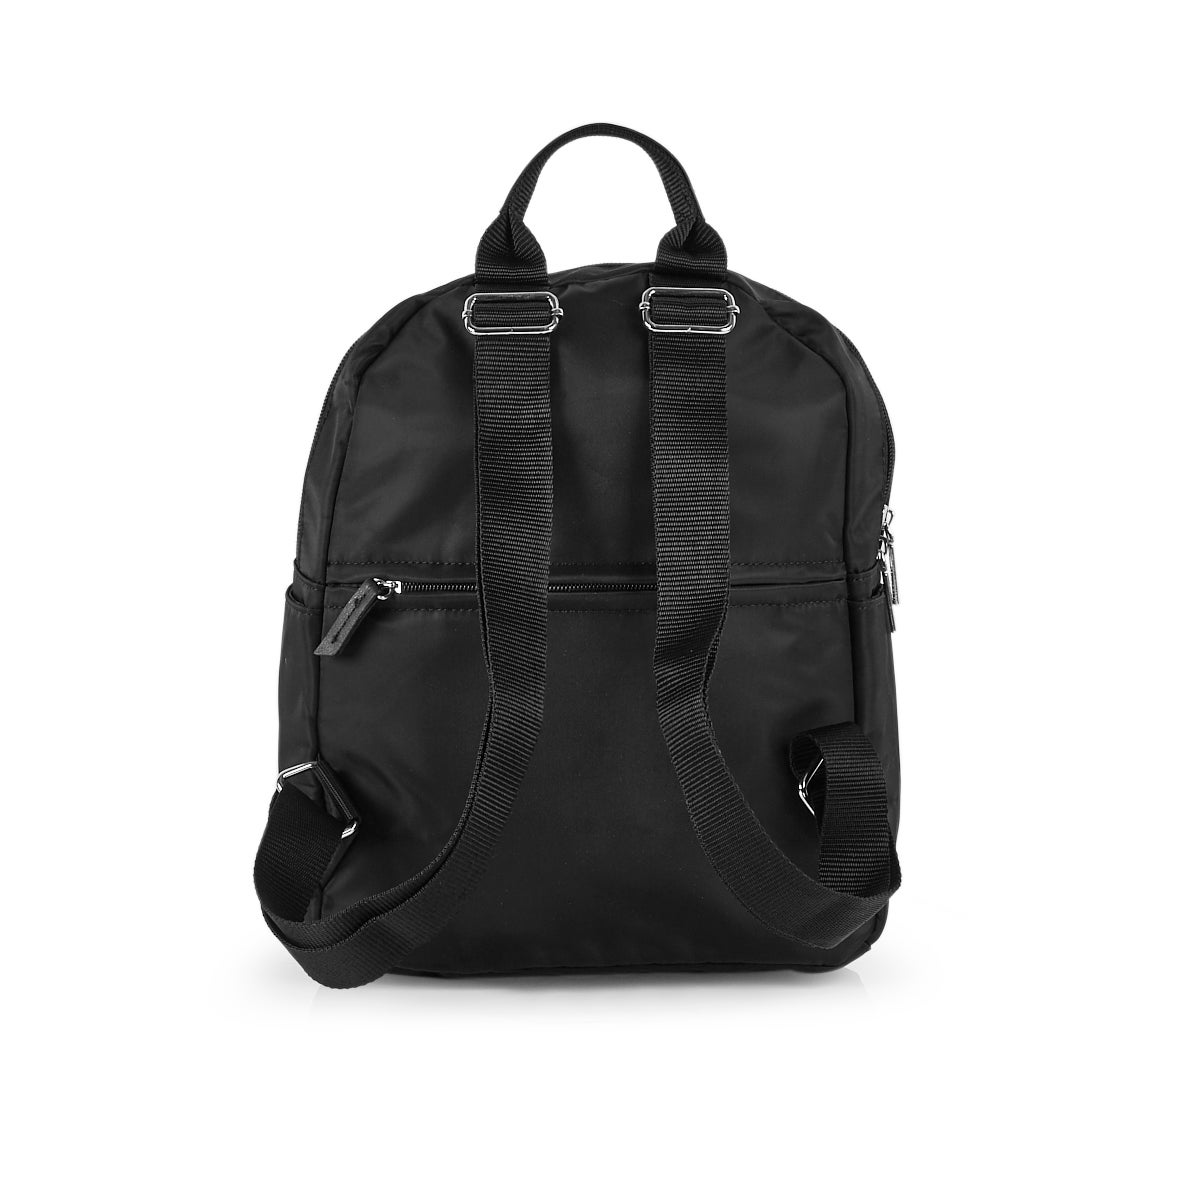 Lds Roots73 blk multi-zip pocket backpck